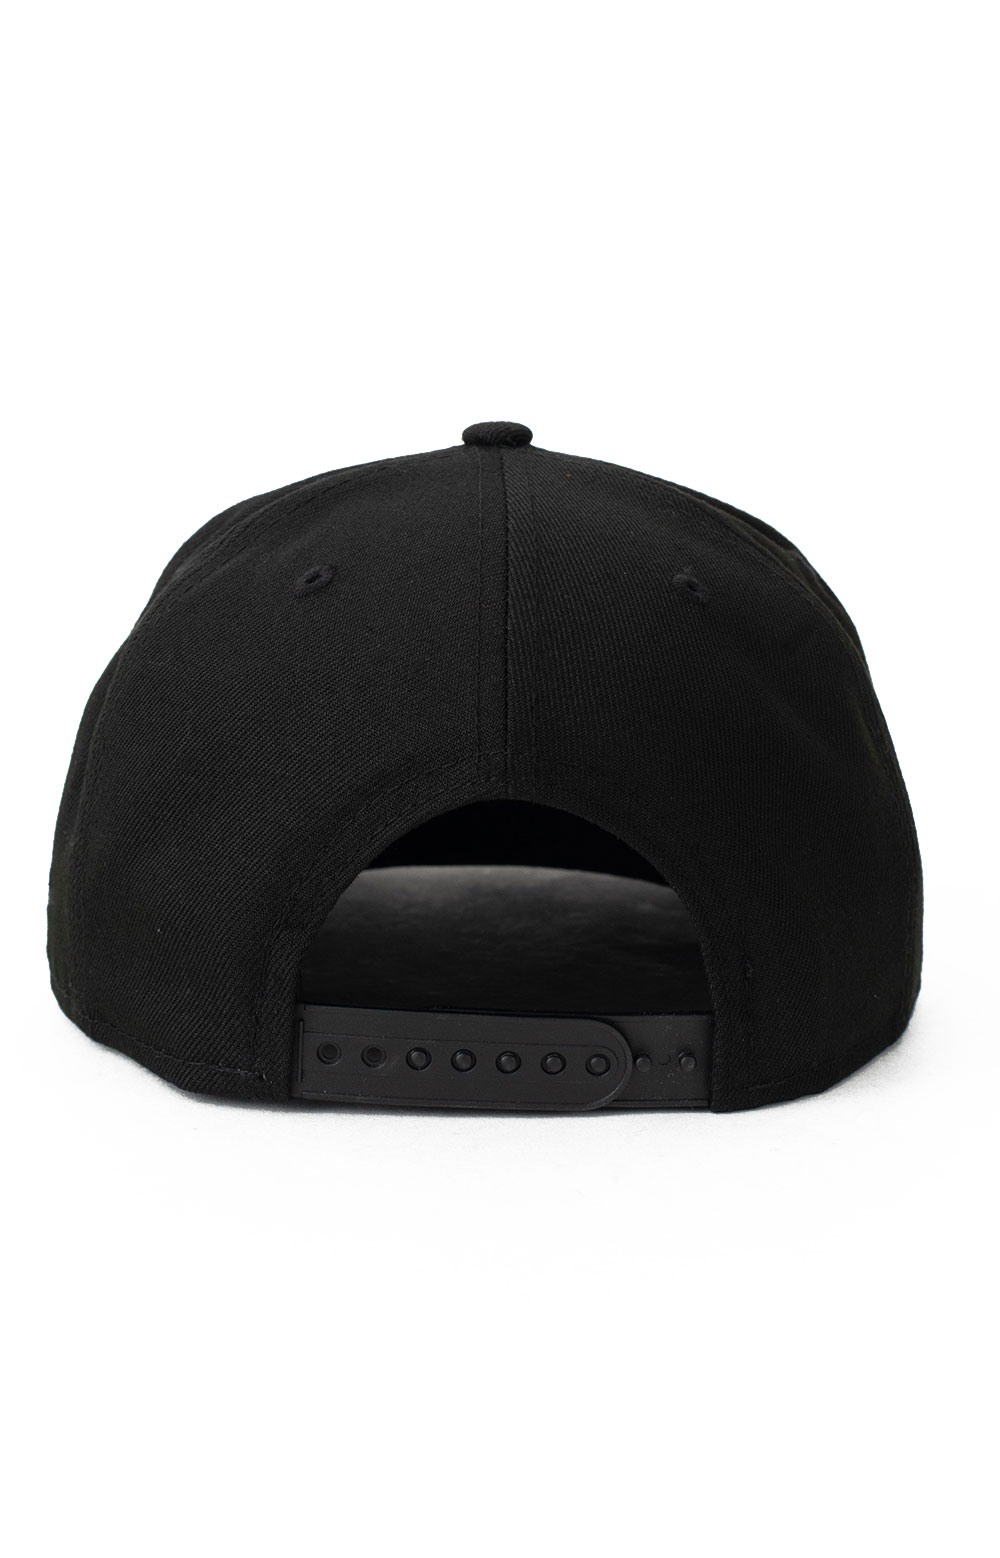 9Fifty Color Pack Snap-Back Hat - NY Yankees Black  3